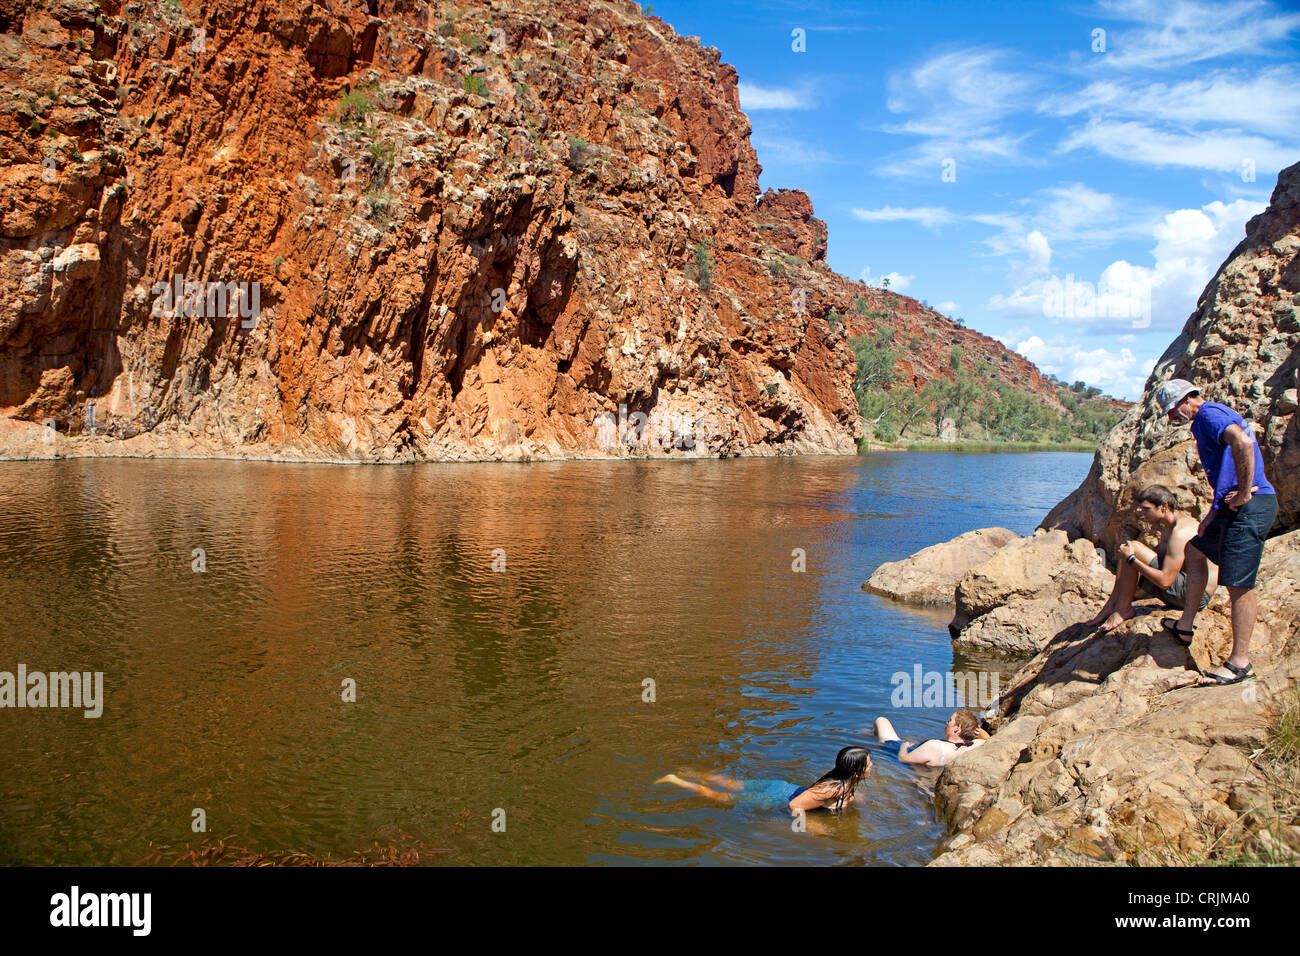 Cooling off in Glen Helen Gorge in the West MacDonnell Ranges - Stock Image